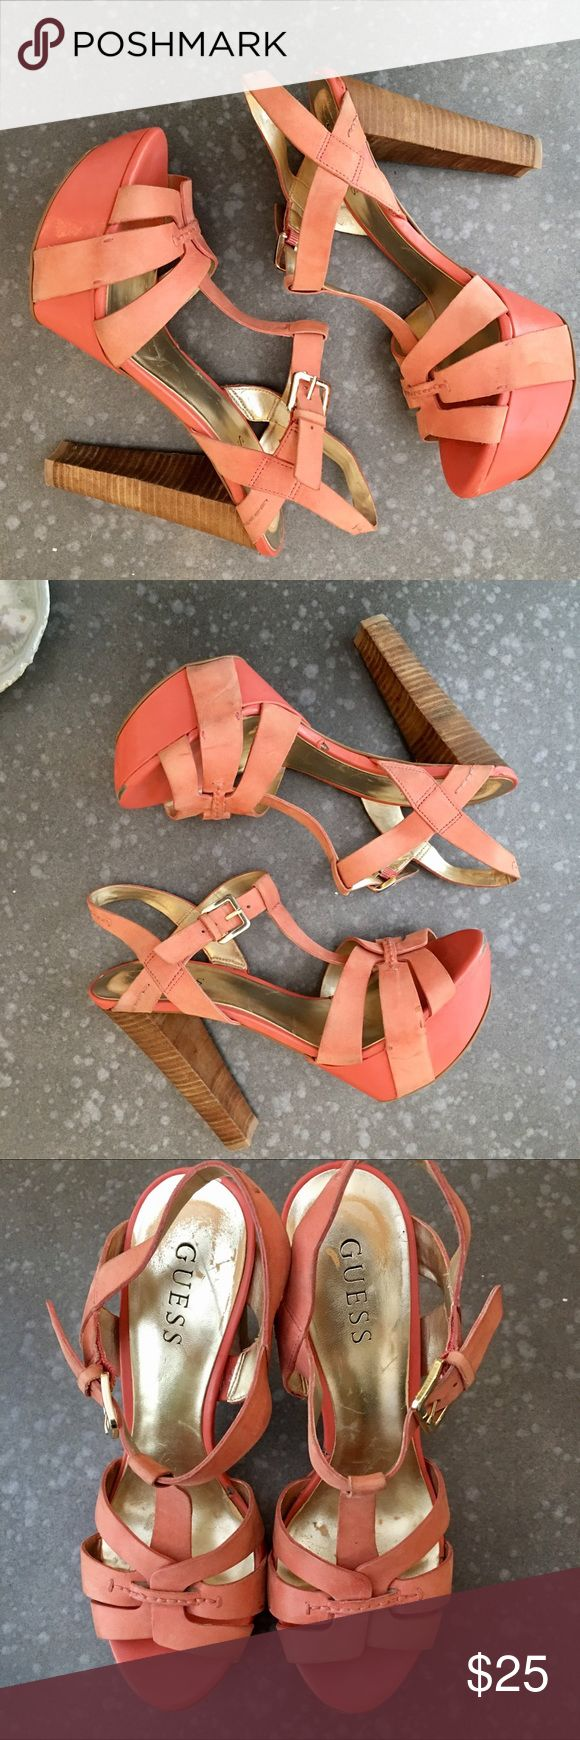 Guess by Marciano Coral Platform Heels Sandals Sandal heel Guess by Marciano Coral size 8. Beautiful shoes with minor flaws. Not noticeable during wear. Condition 7/10. Purchased at the Guess Marciano Store in Vegas for $148. Please make an offer through Posh 💕🍭 Guess by Marciano Shoes Heels